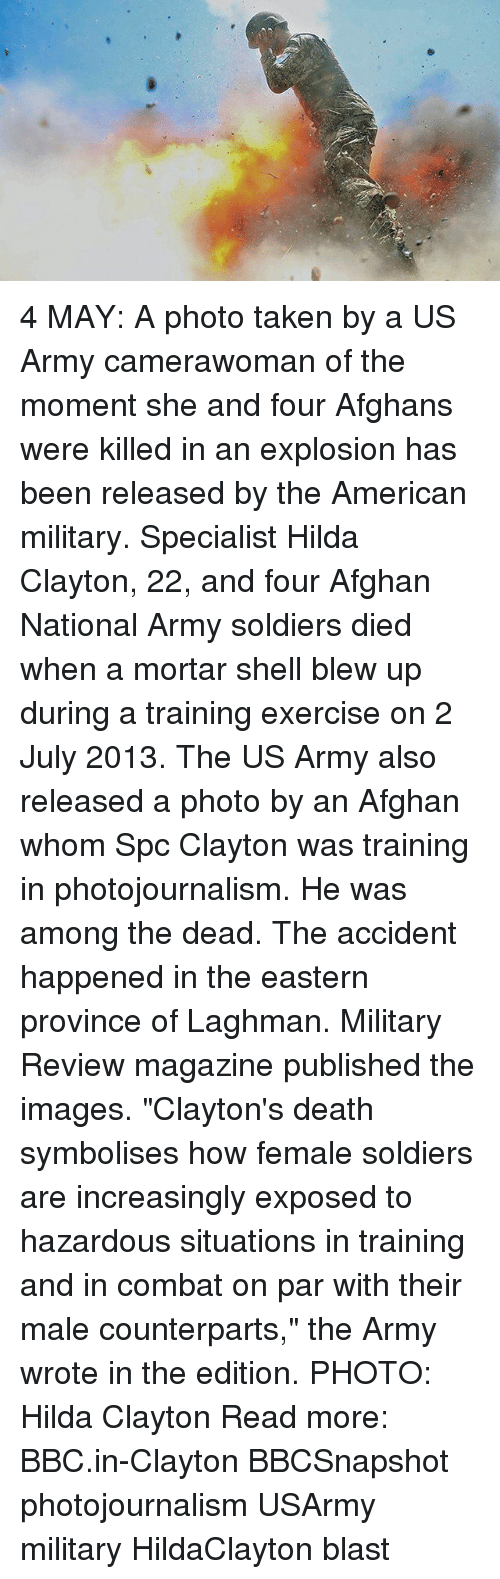 """combative: 4 MAY: A photo taken by a US Army camerawoman of the moment she and four Afghans were killed in an explosion has been released by the American military. Specialist Hilda Clayton, 22, and four Afghan National Army soldiers died when a mortar shell blew up during a training exercise on 2 July 2013. The US Army also released a photo by an Afghan whom Spc Clayton was training in photojournalism. He was among the dead. The accident happened in the eastern province of Laghman. Military Review magazine published the images. """"Clayton's death symbolises how female soldiers are increasingly exposed to hazardous situations in training and in combat on par with their male counterparts,"""" the Army wrote in the edition. PHOTO: Hilda Clayton Read more: BBC.in-Clayton BBCSnapshot photojournalism USArmy military HildaClayton blast"""